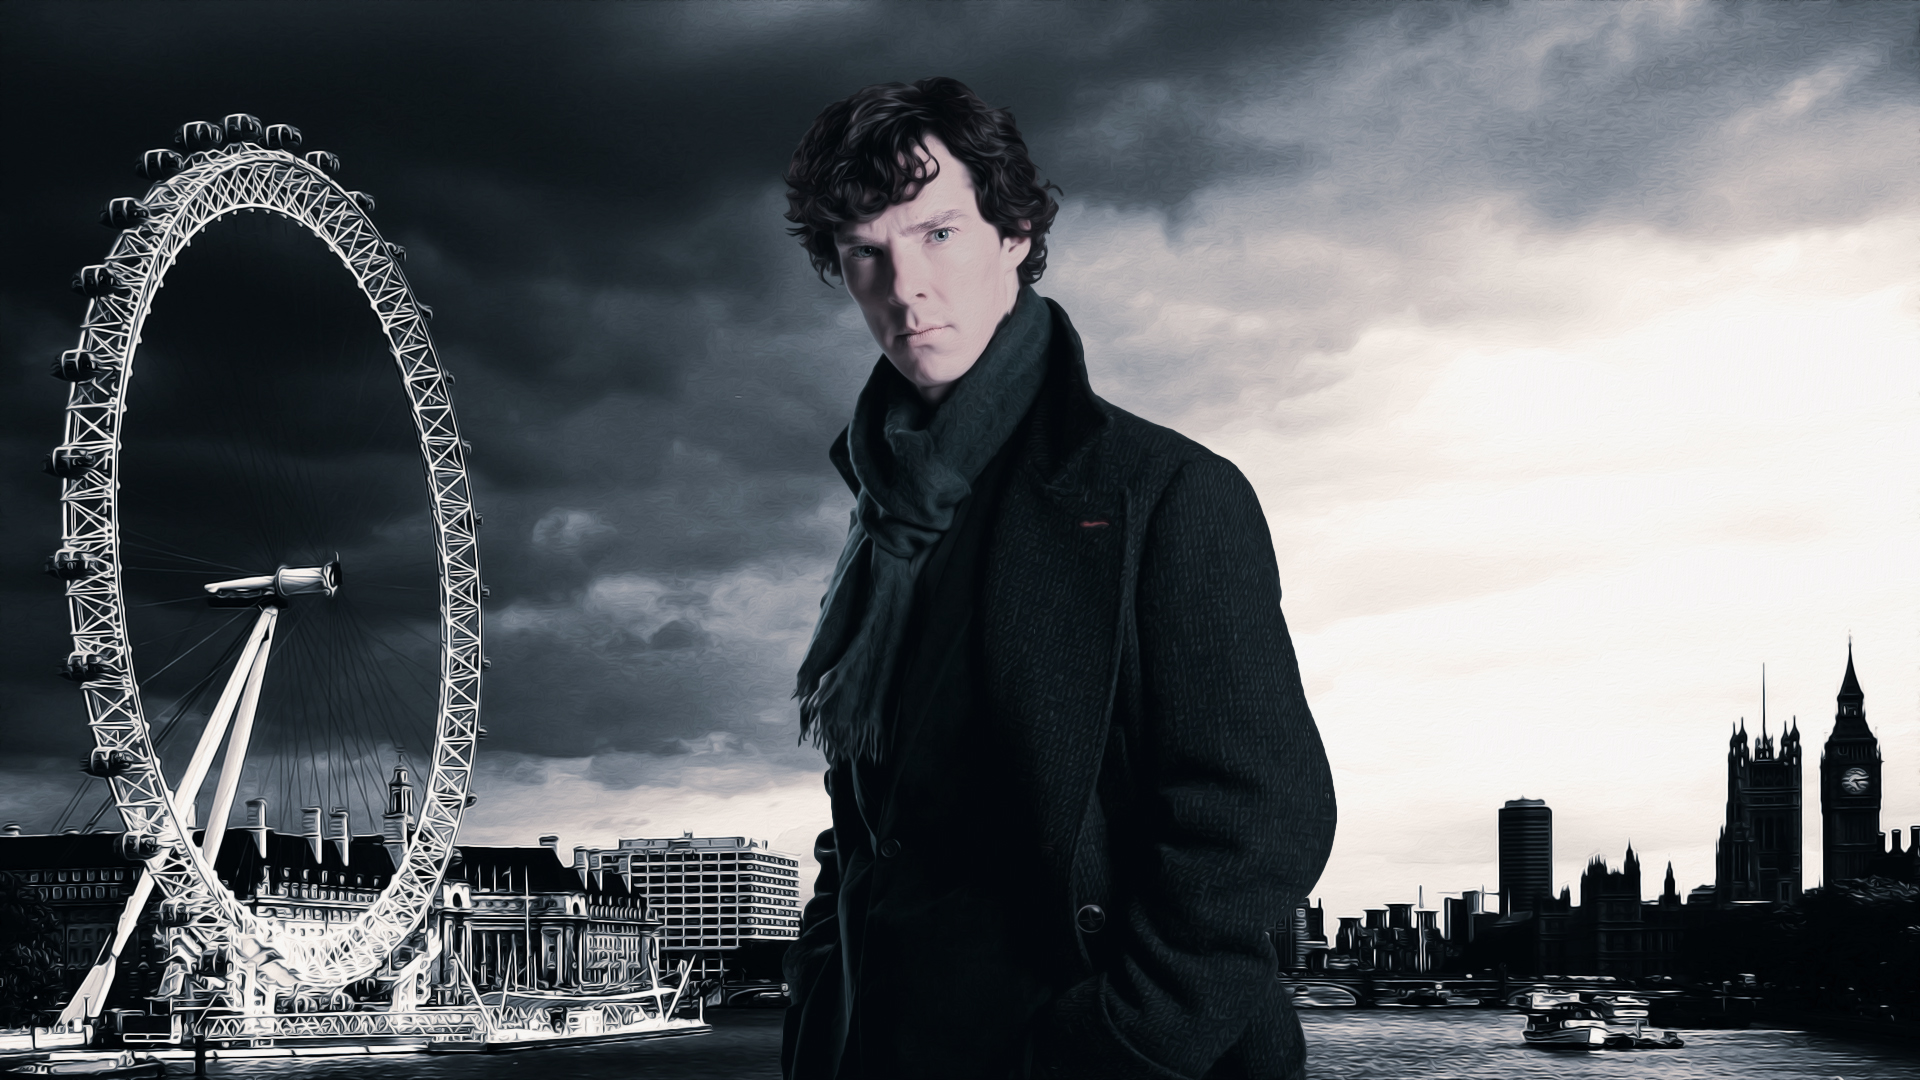 Benedict Cumberbatch Wallpaper Hd: Sherlock Wallpapers, Pictures, Images